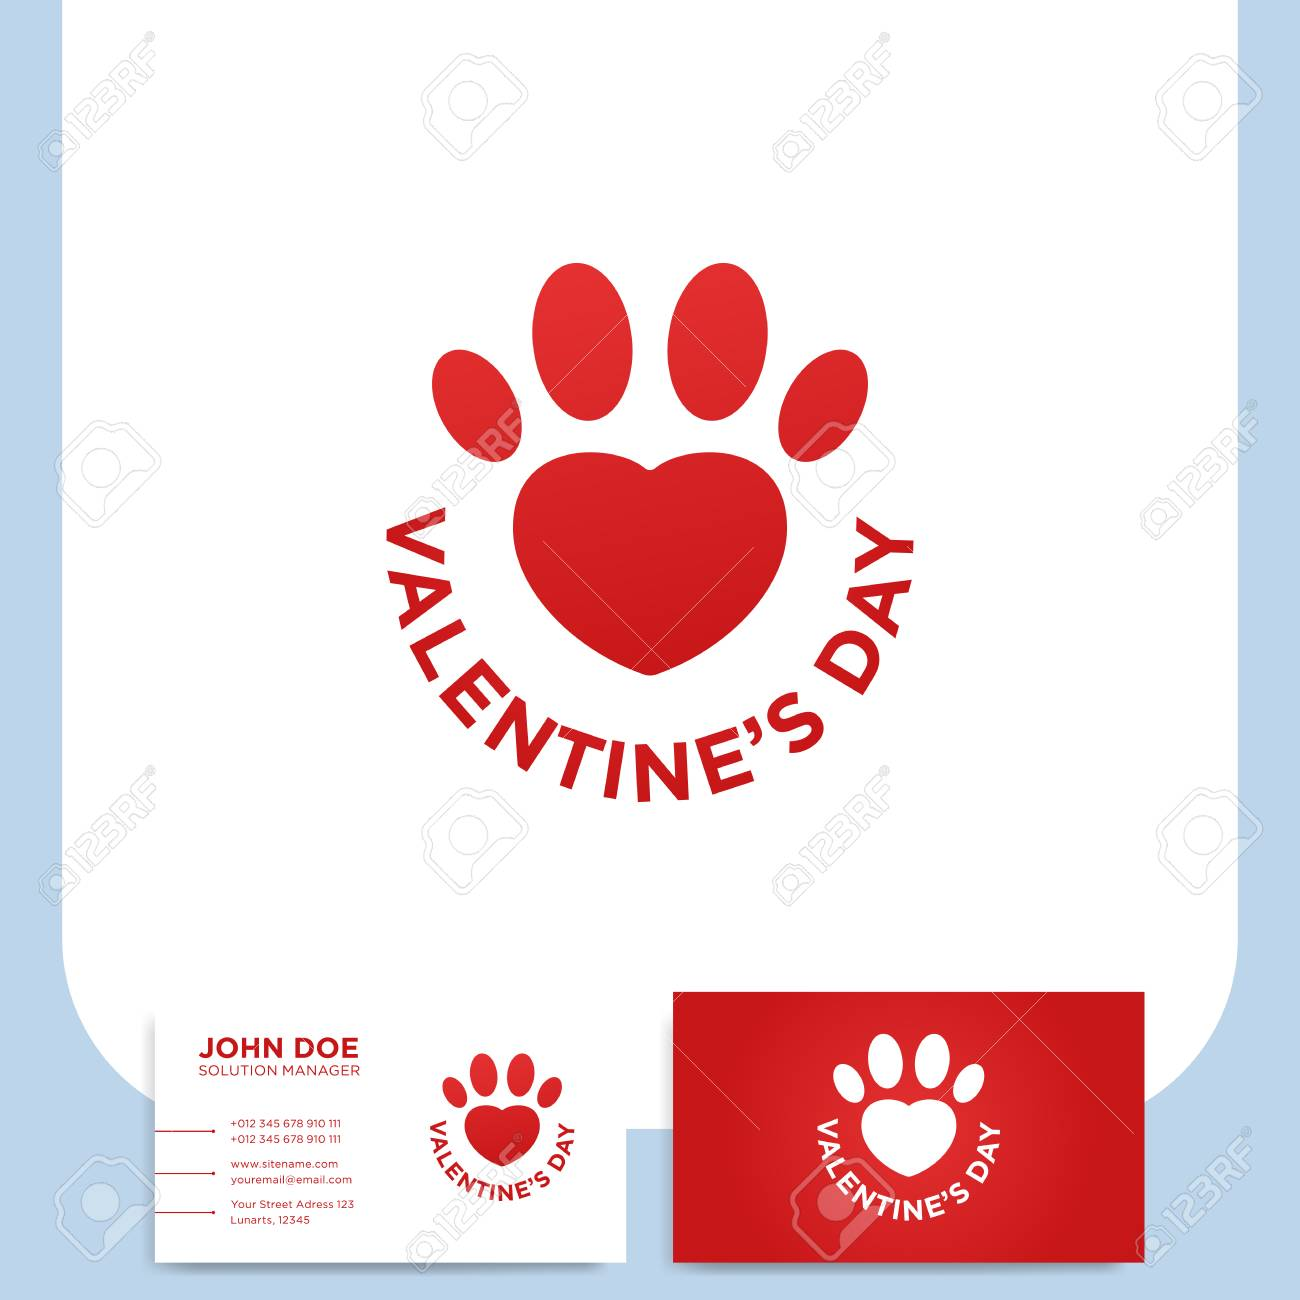 Valentine\'s Day Red Heart Shaped Paw Print With Text And Business ...